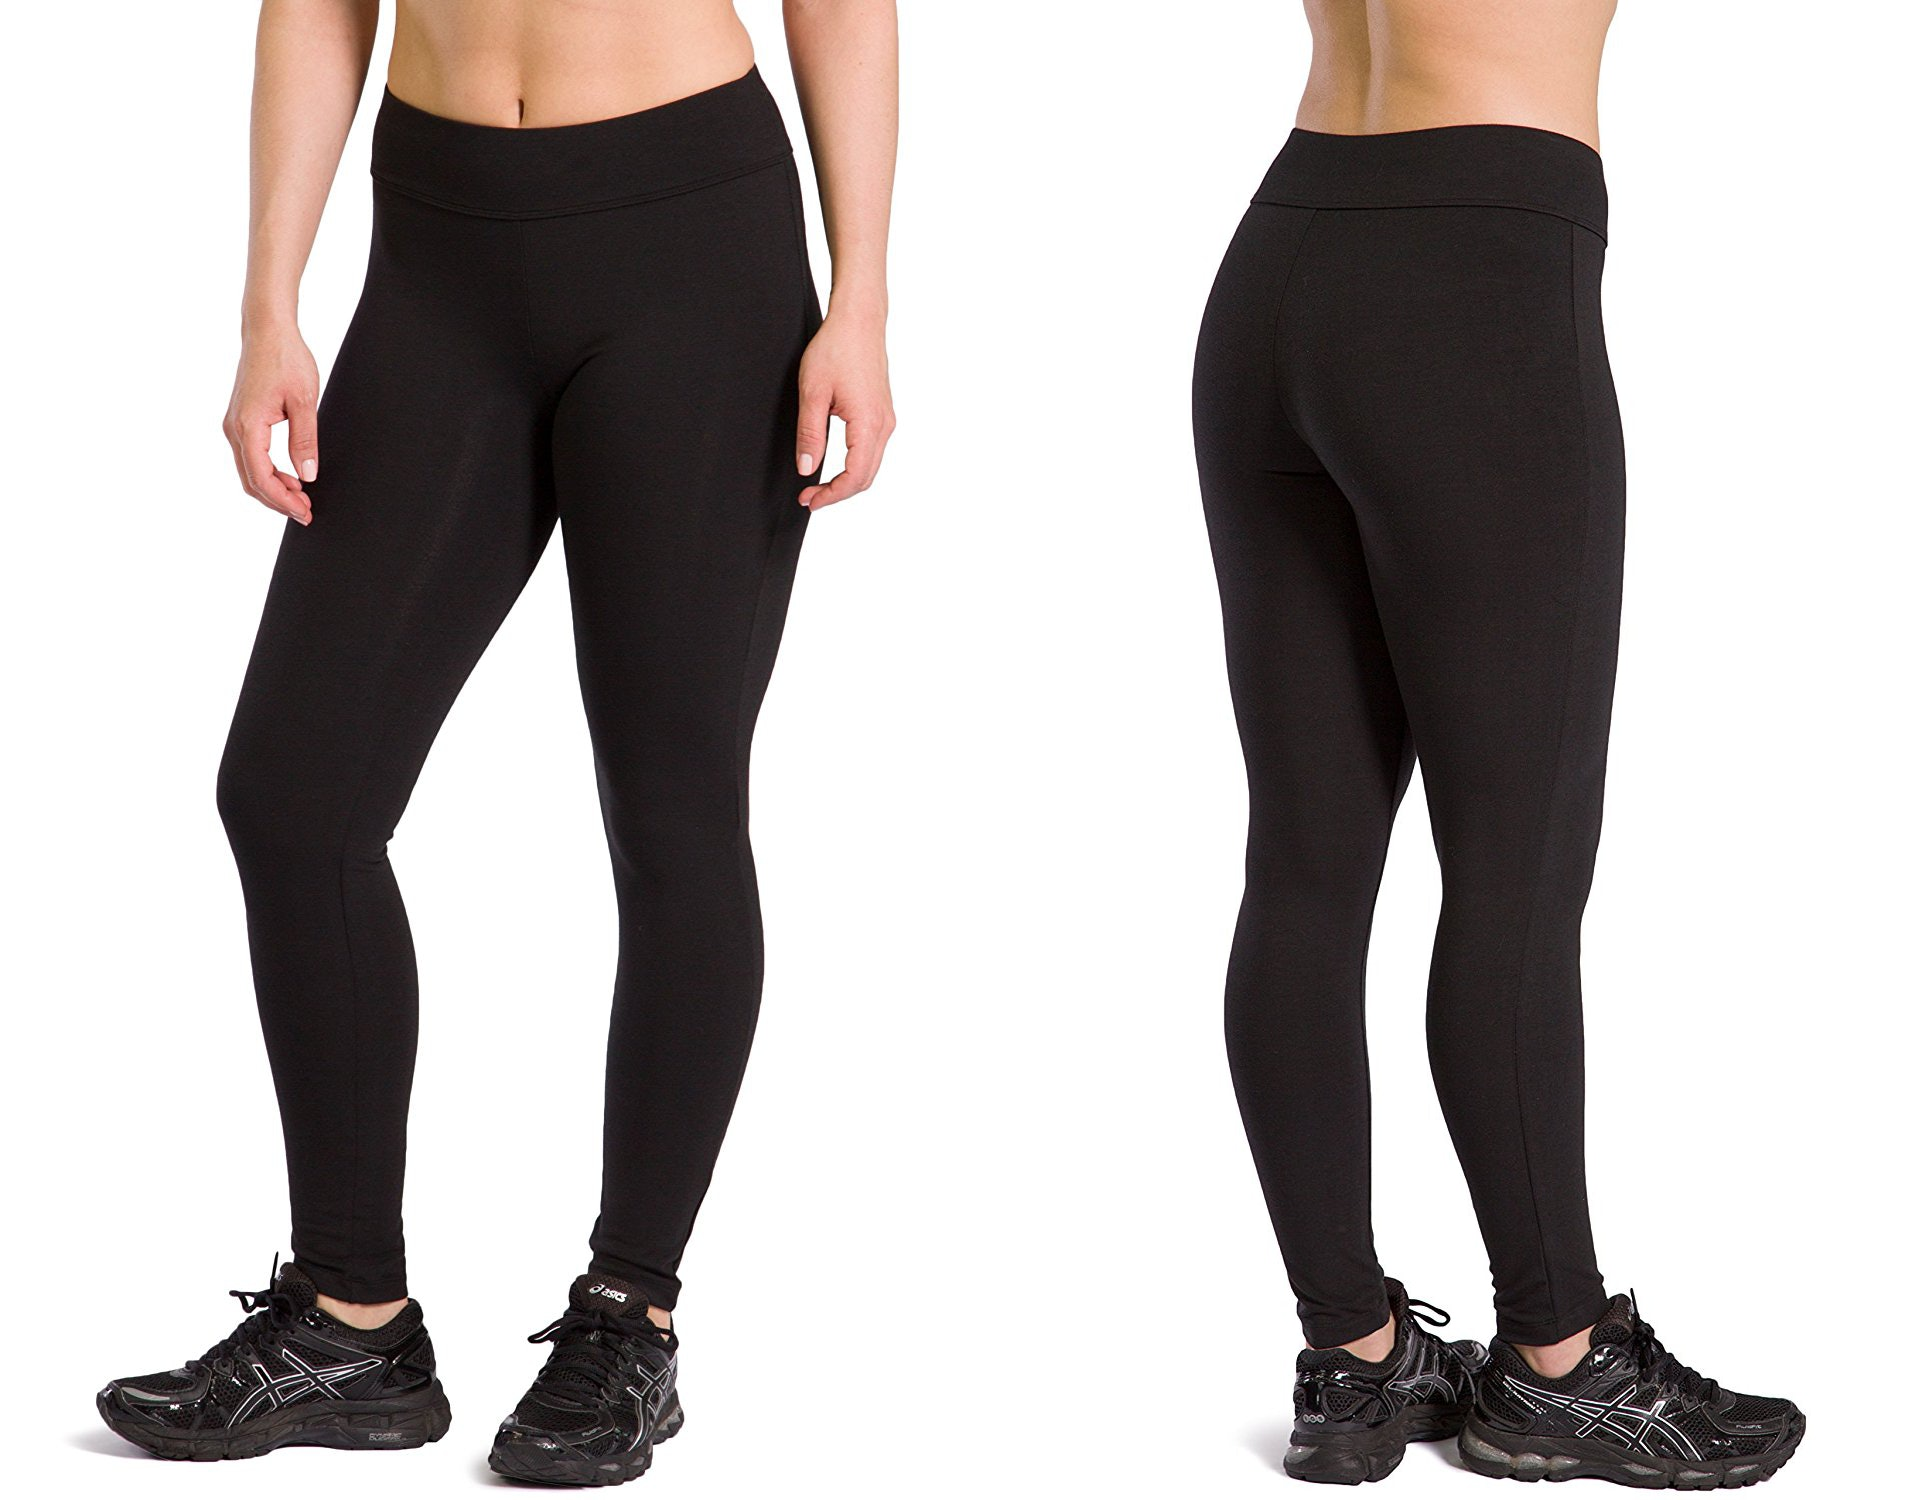 eb021cb556ccdc The 6 Best Leggings For Tall Women